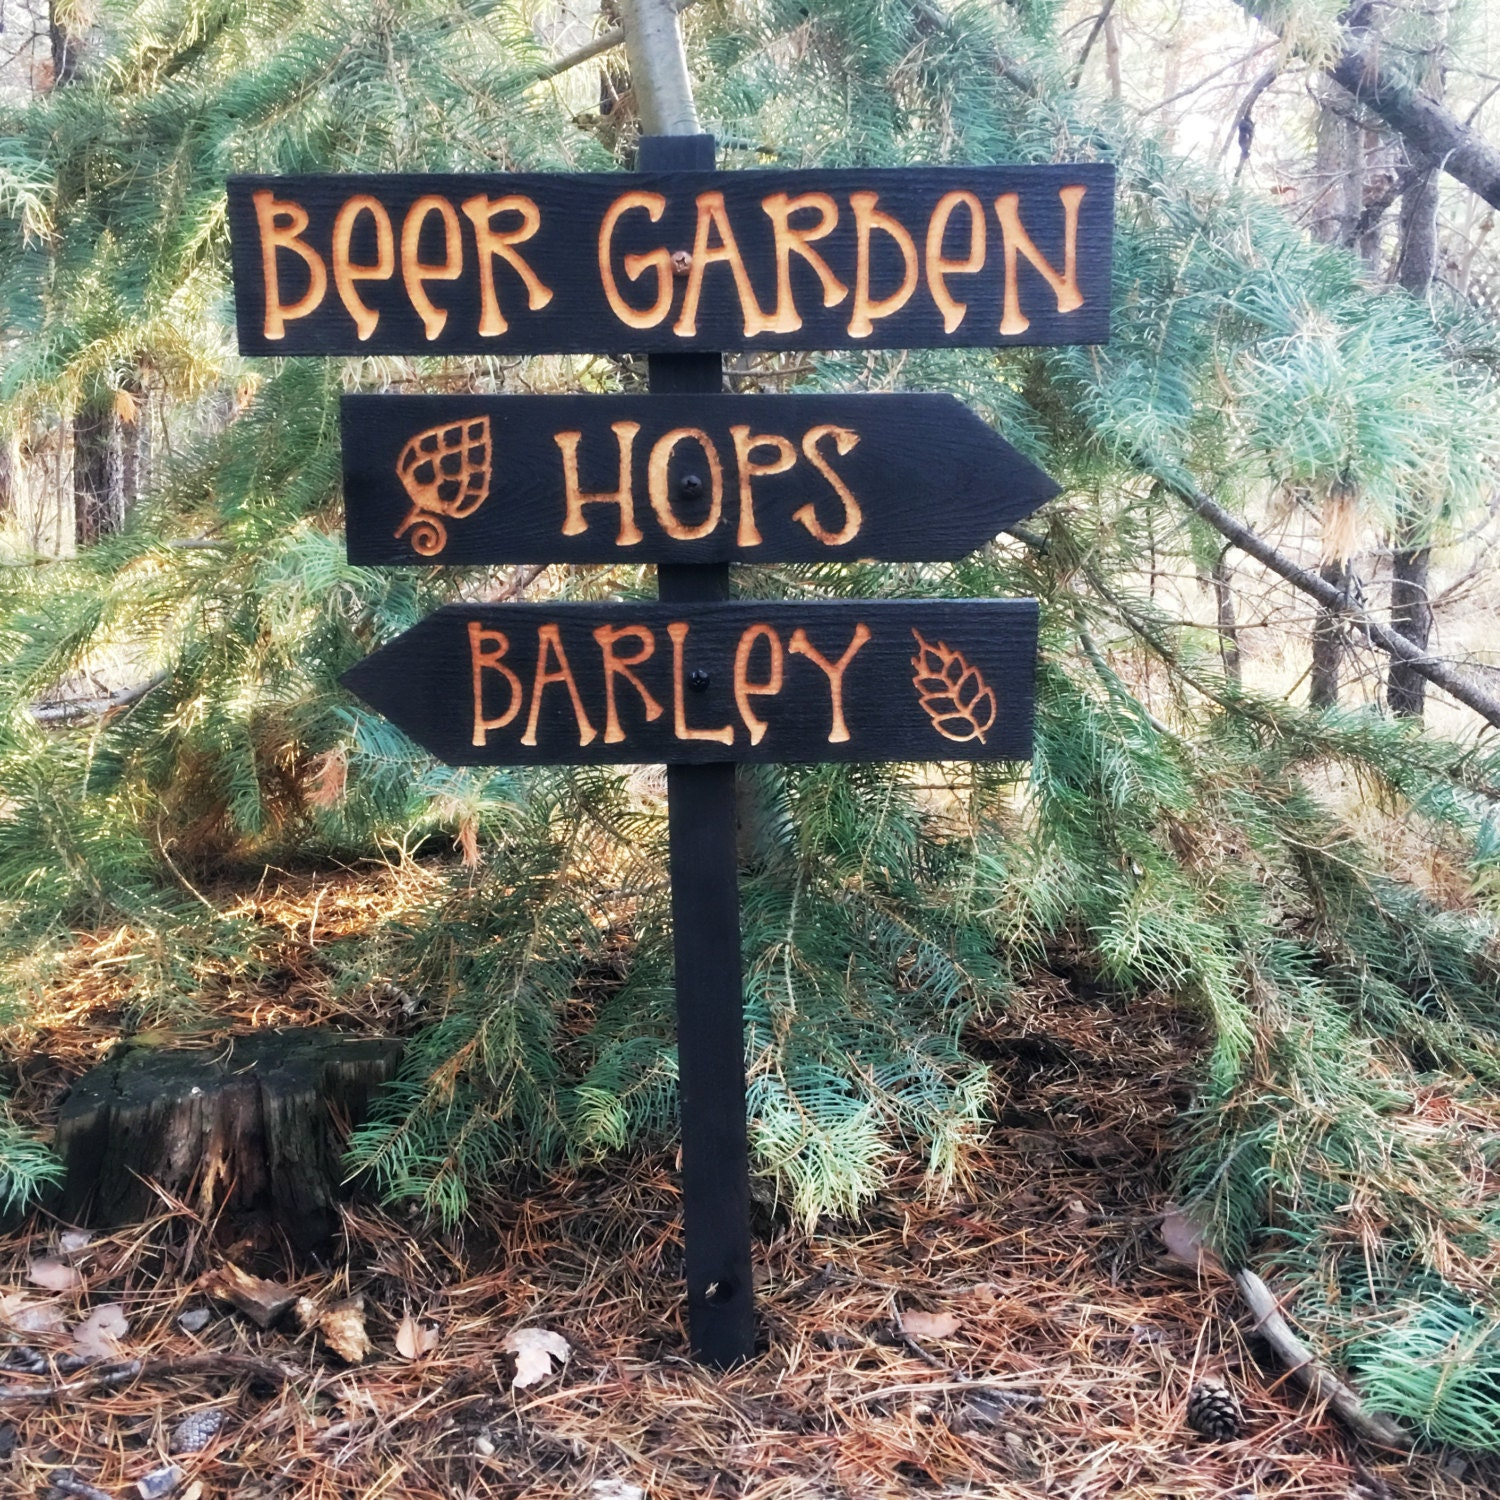 Beer Garden Directional Lawn Ornament Sign   Home Brewing Beervana Hops  Barley Fathers Day Fun Lawn Signs Decr Decoration Cedar Wood Decor